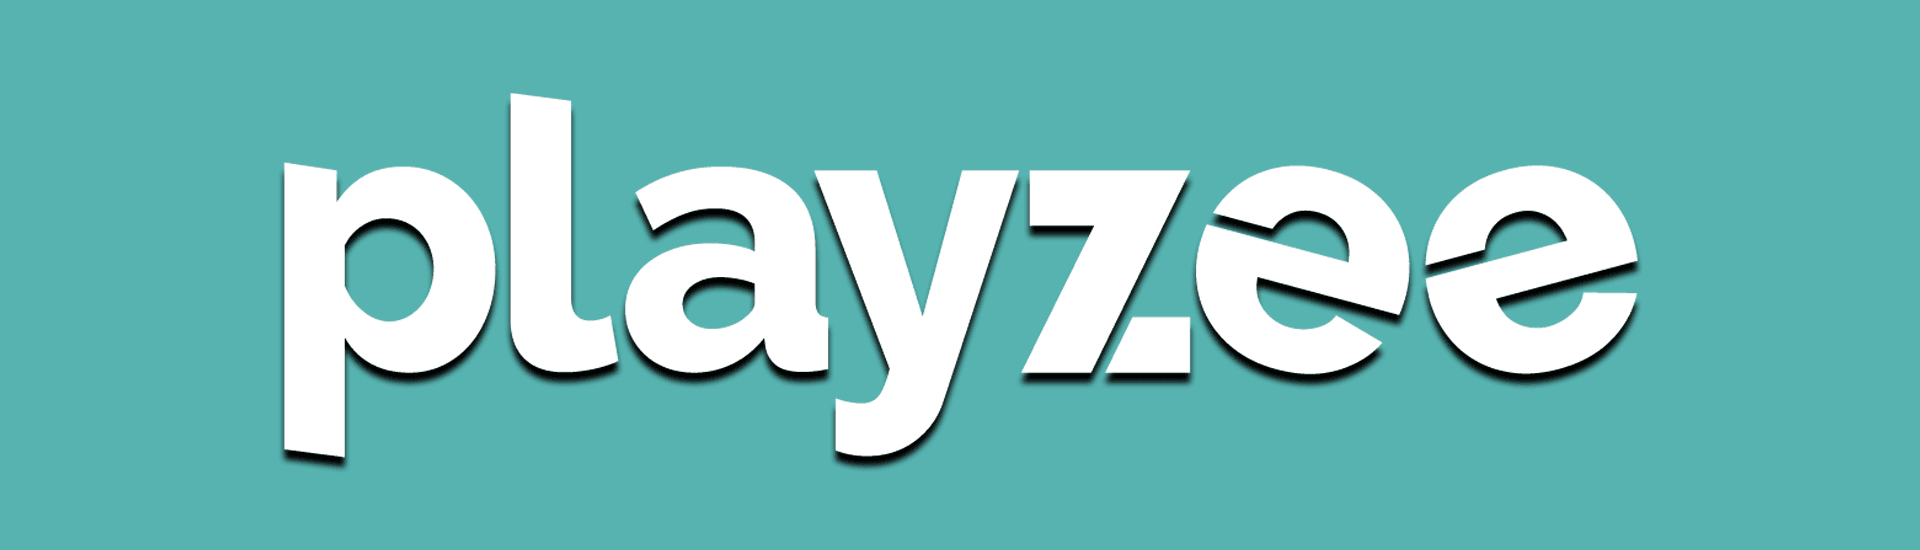 Playzee Featured Image